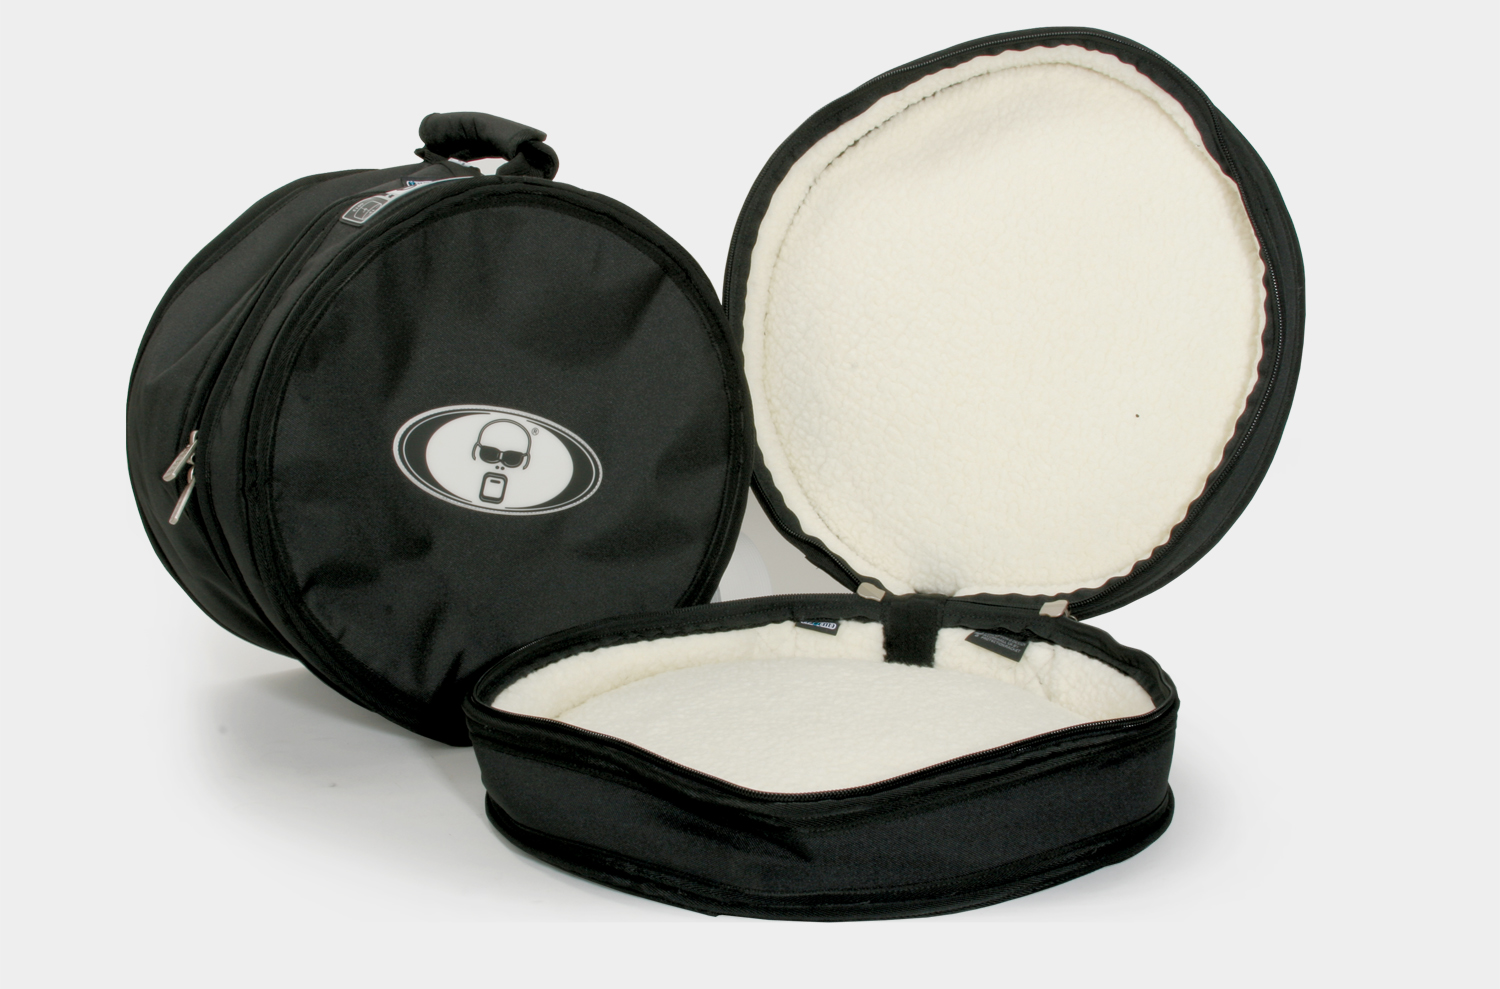 Protection Racket Bass Drum Bag